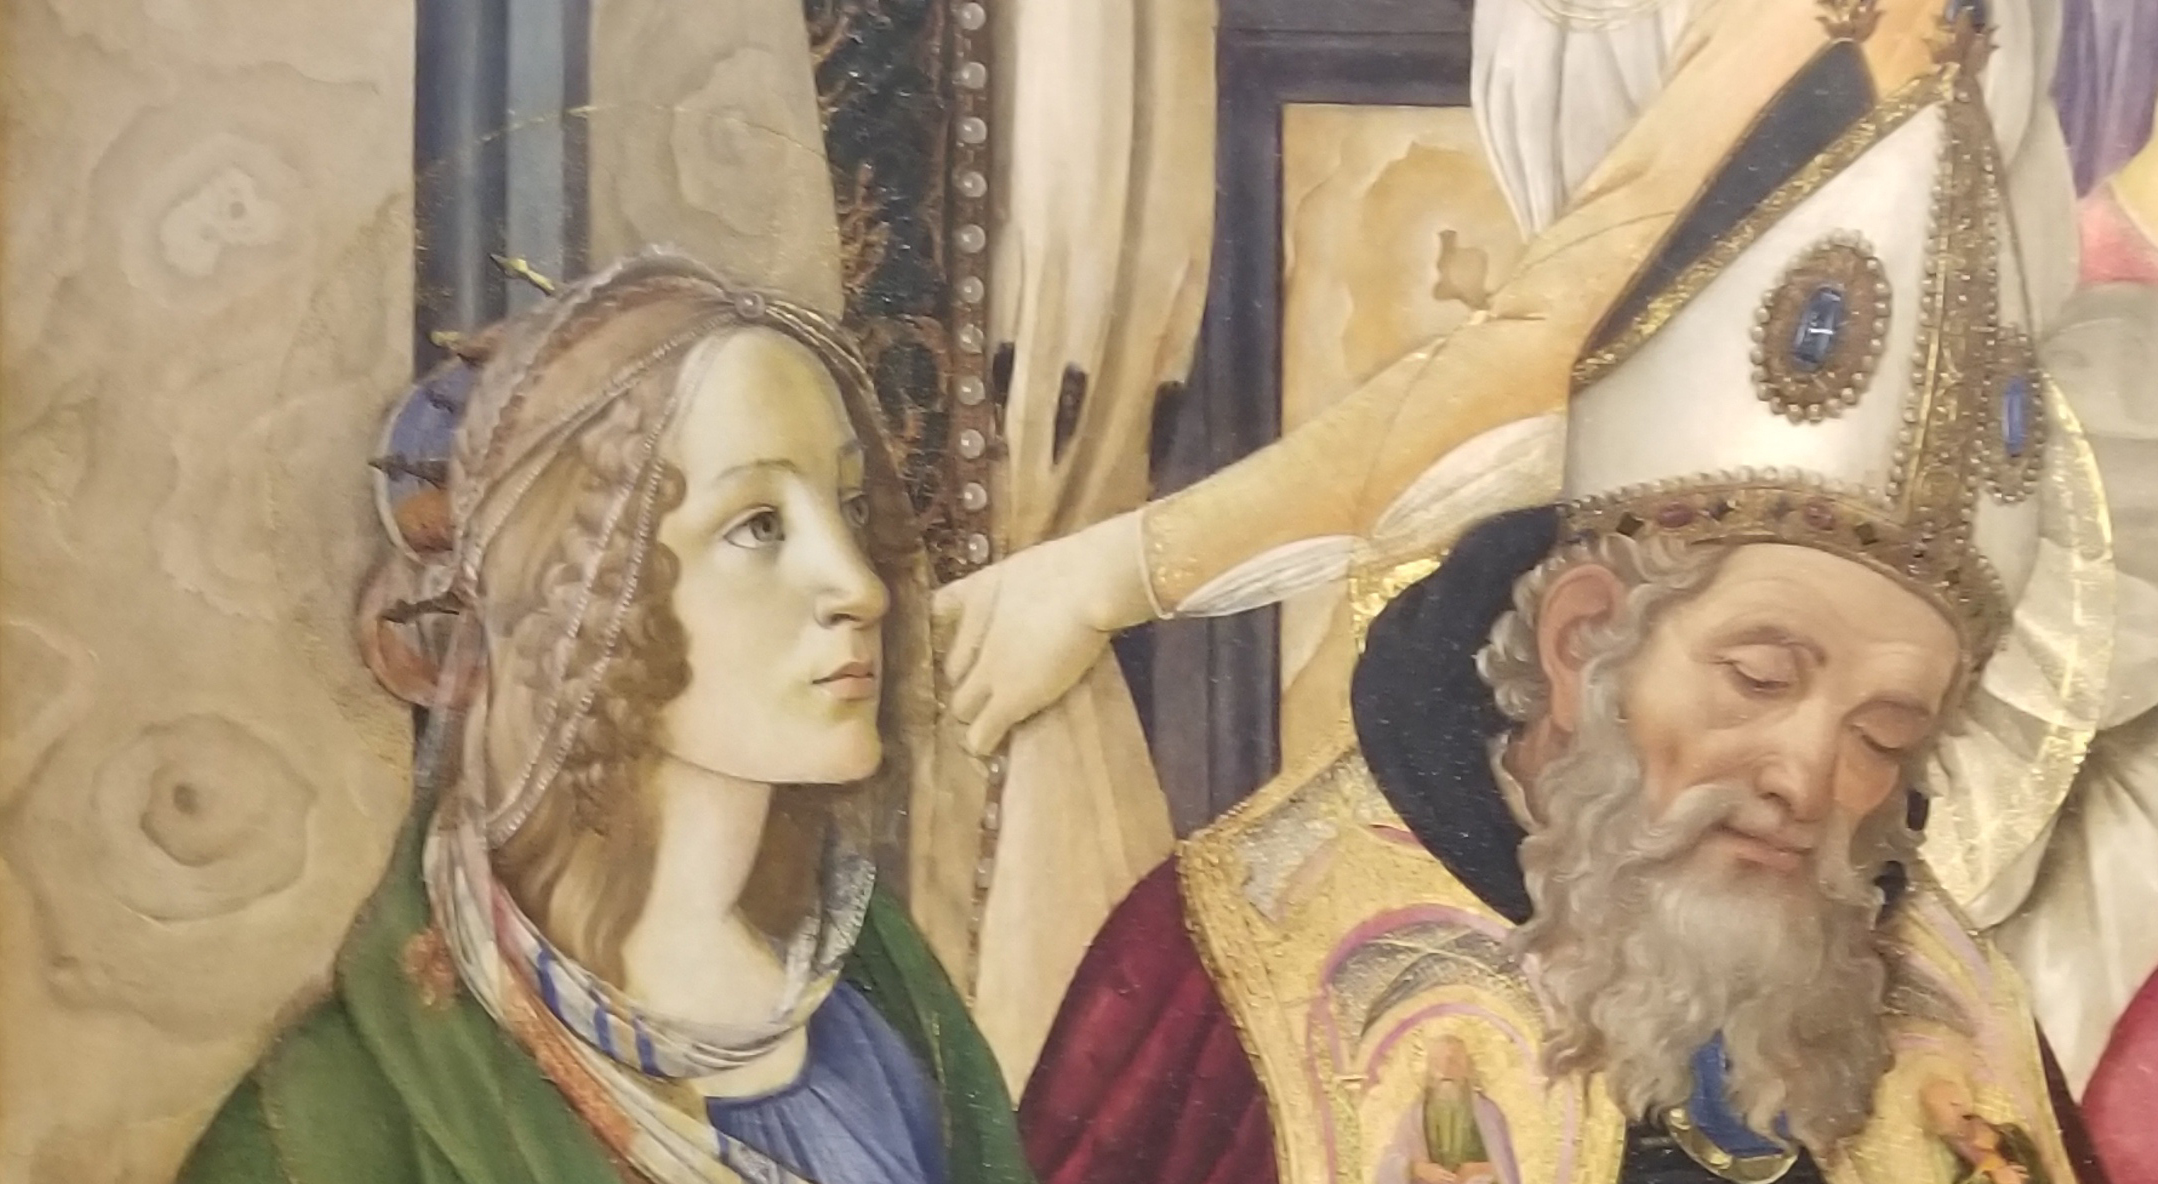 Detail of a Botticelli painting showing the marble wall behind saints